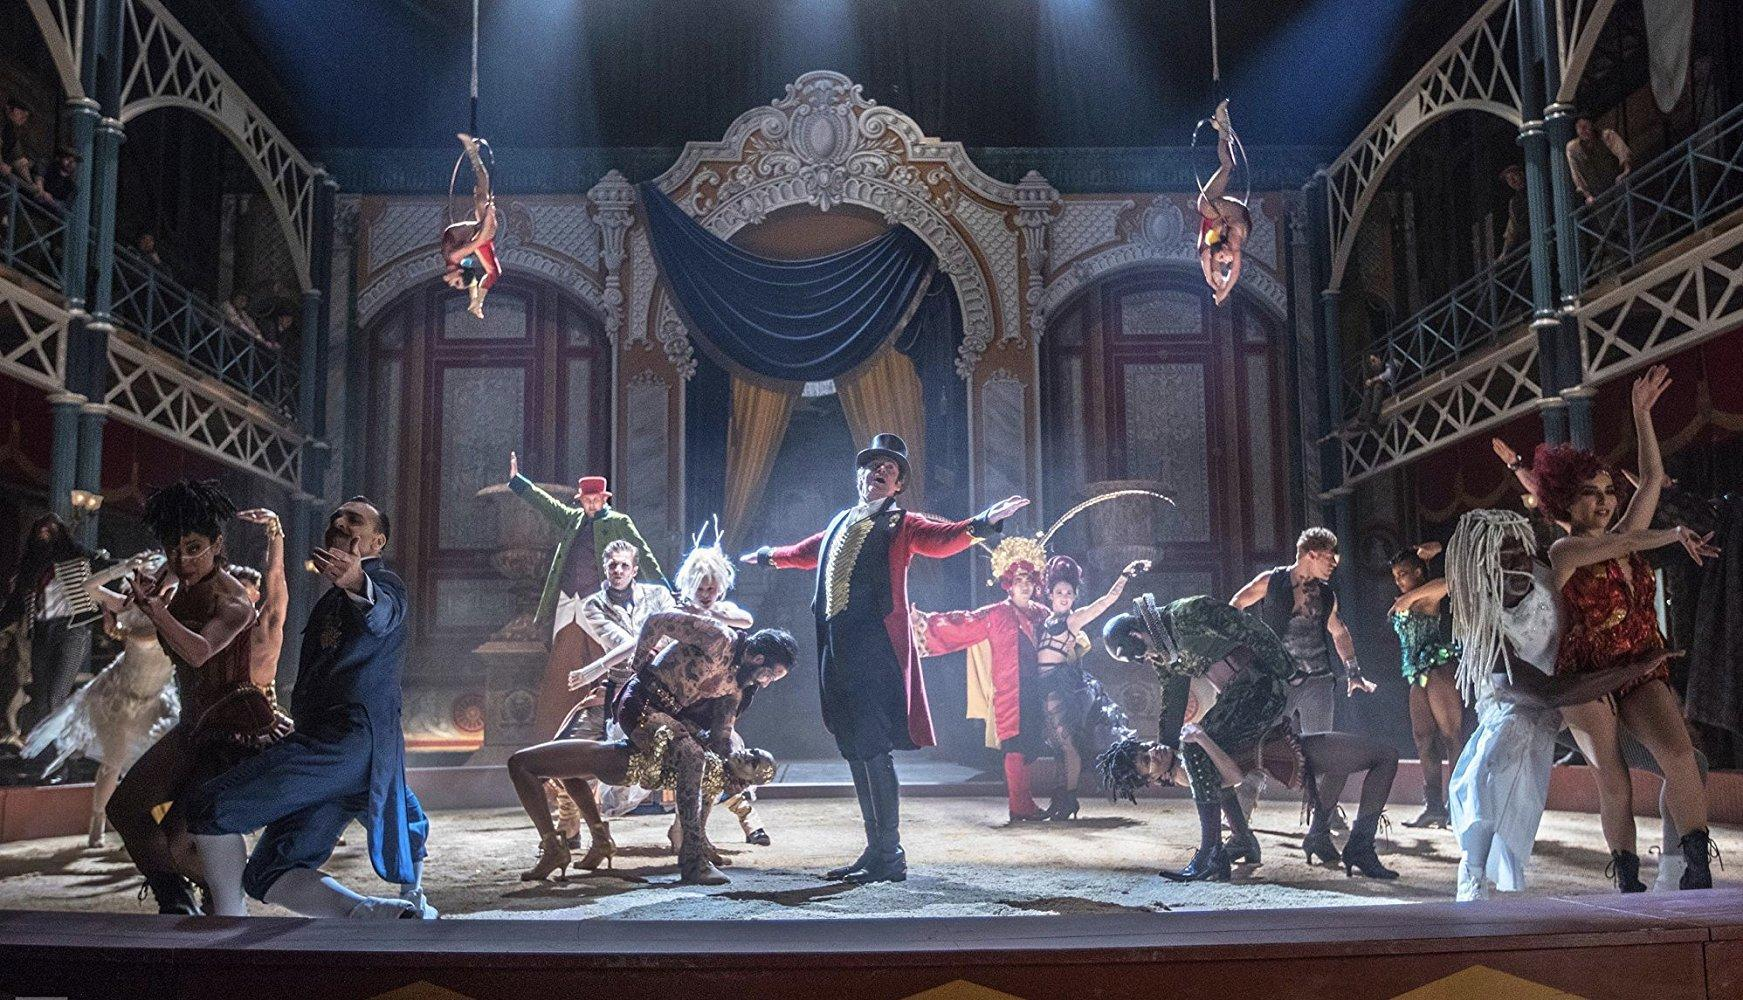 Image gallery for The Greatest Showman - FilmAffinity